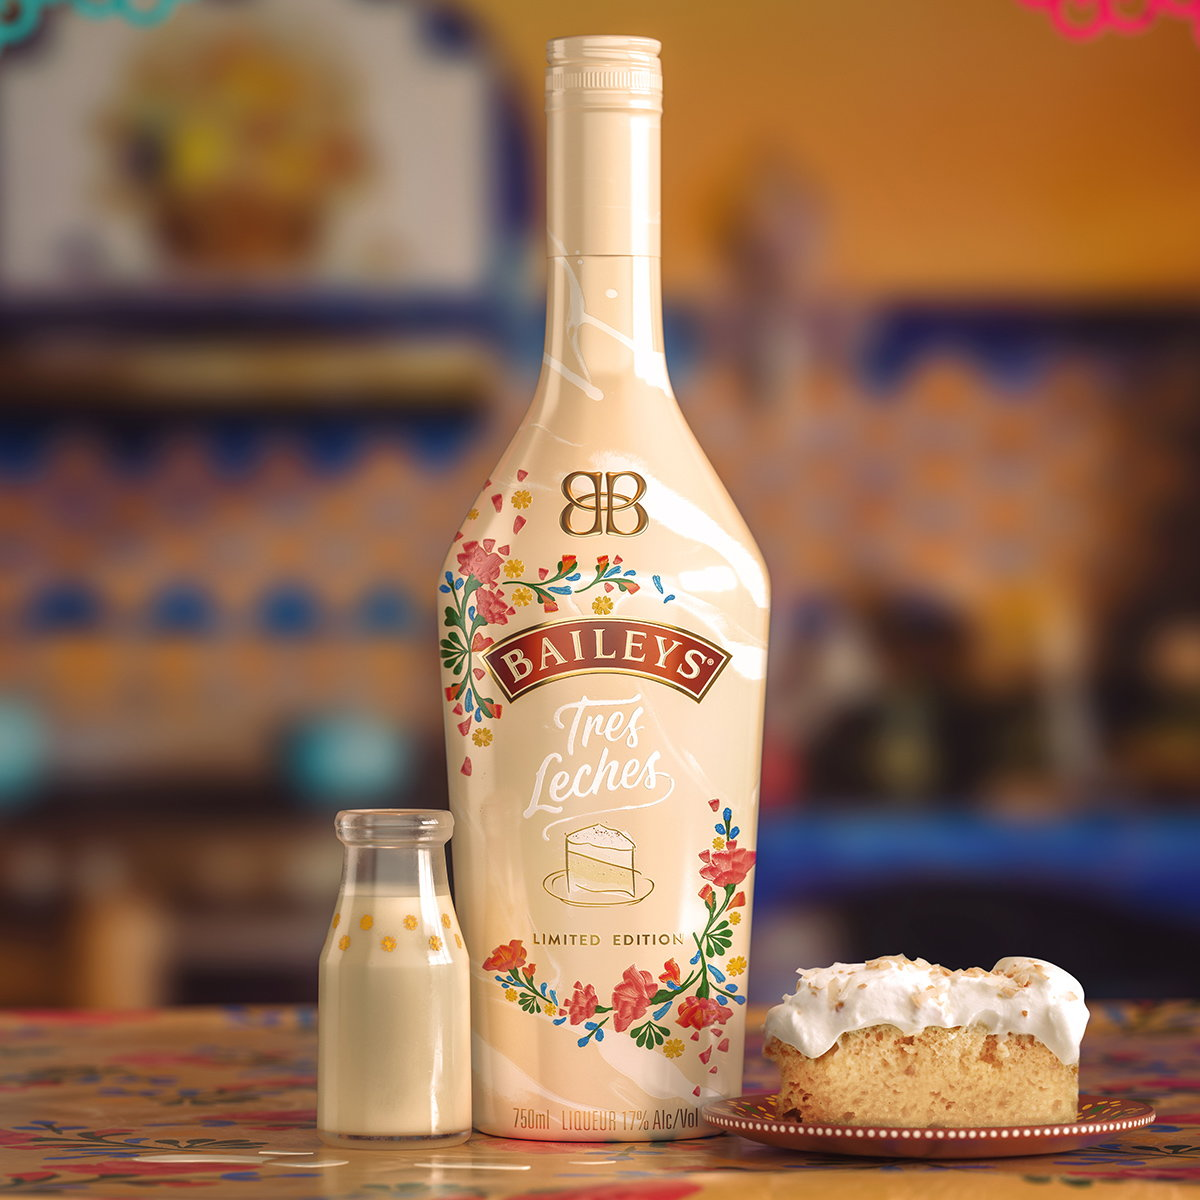 Vault49 Designs Latin American Inspired Packaging for Baileys Tres Leches